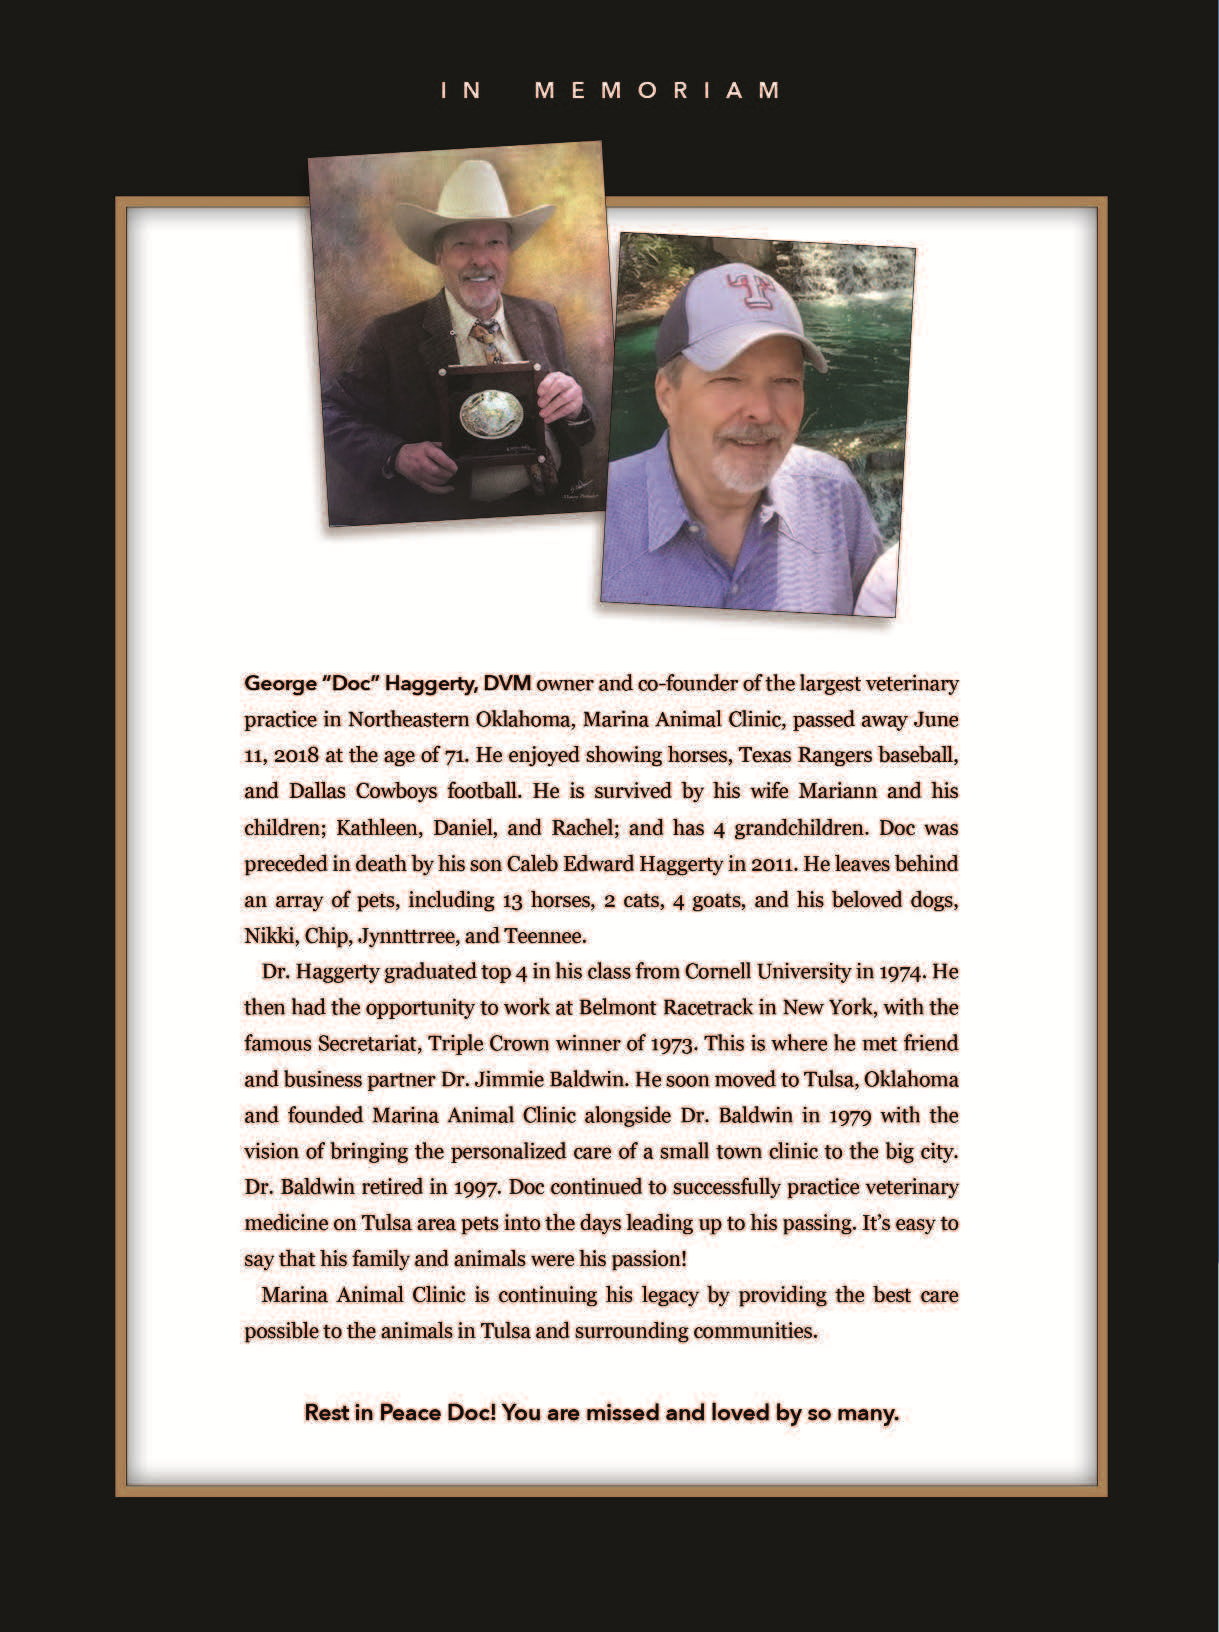 A tribute article to beloved Dr. Haggerty